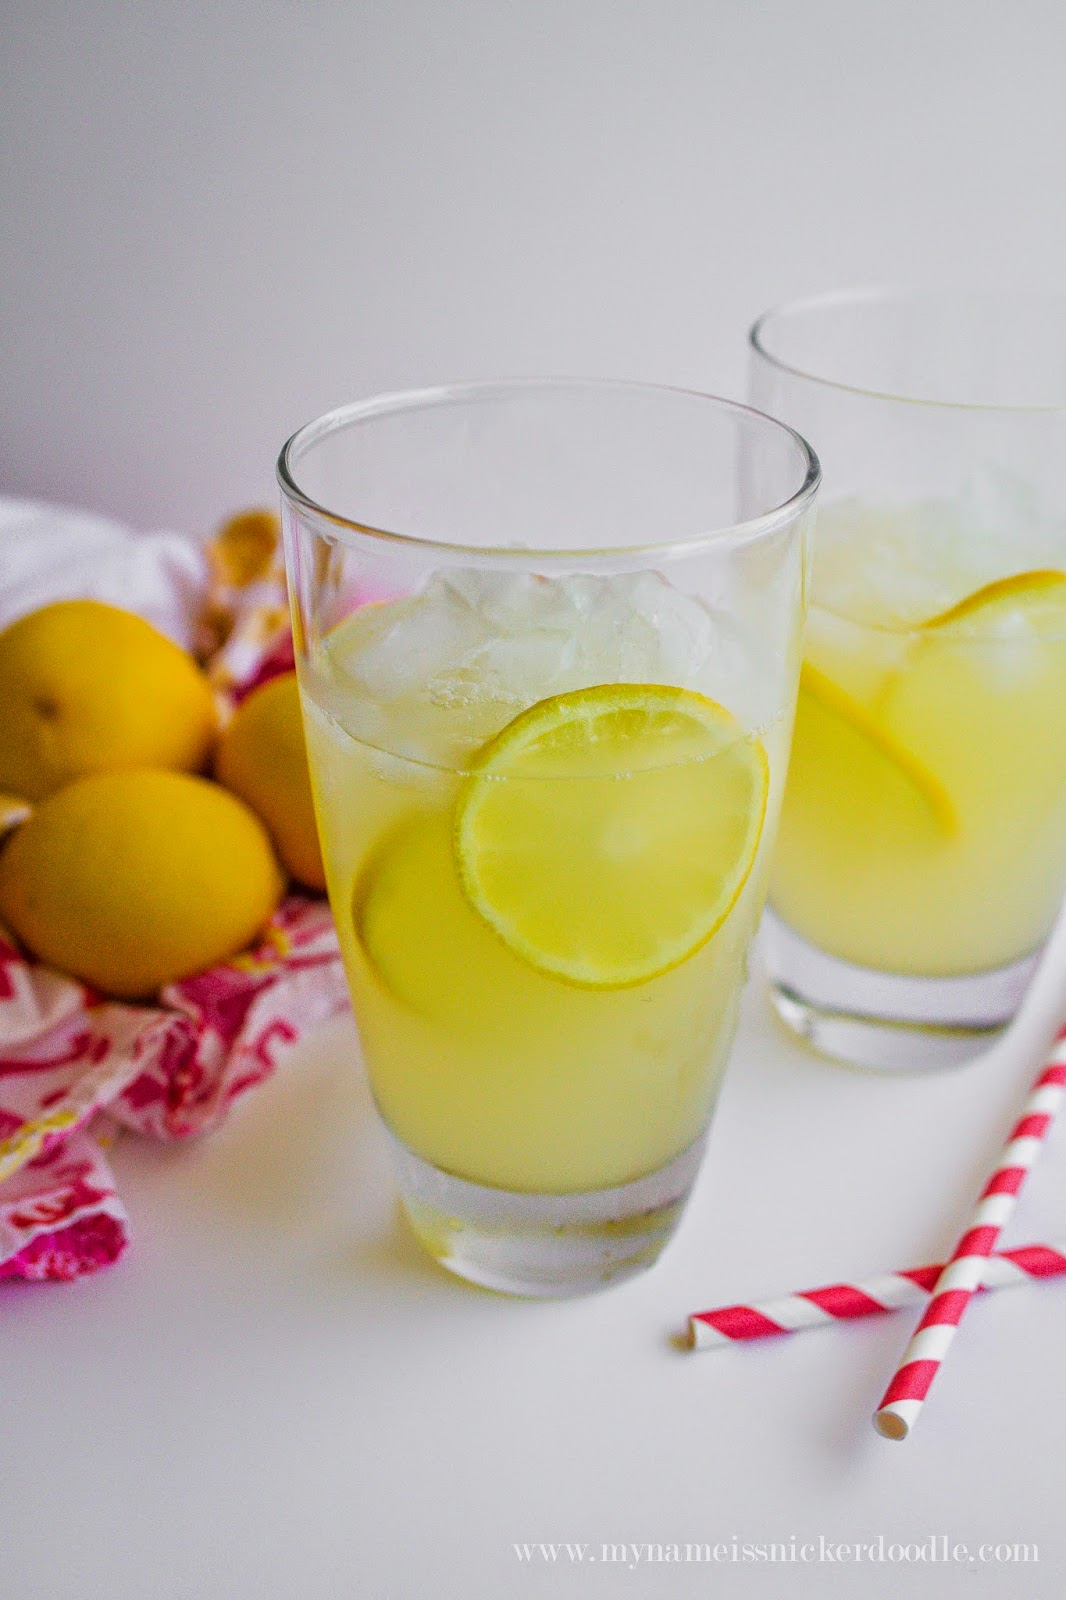 A freshly squeezed lemonade recipe that's only three ingredients and sure to win you over!  |  My Name Is Snickerdoodle